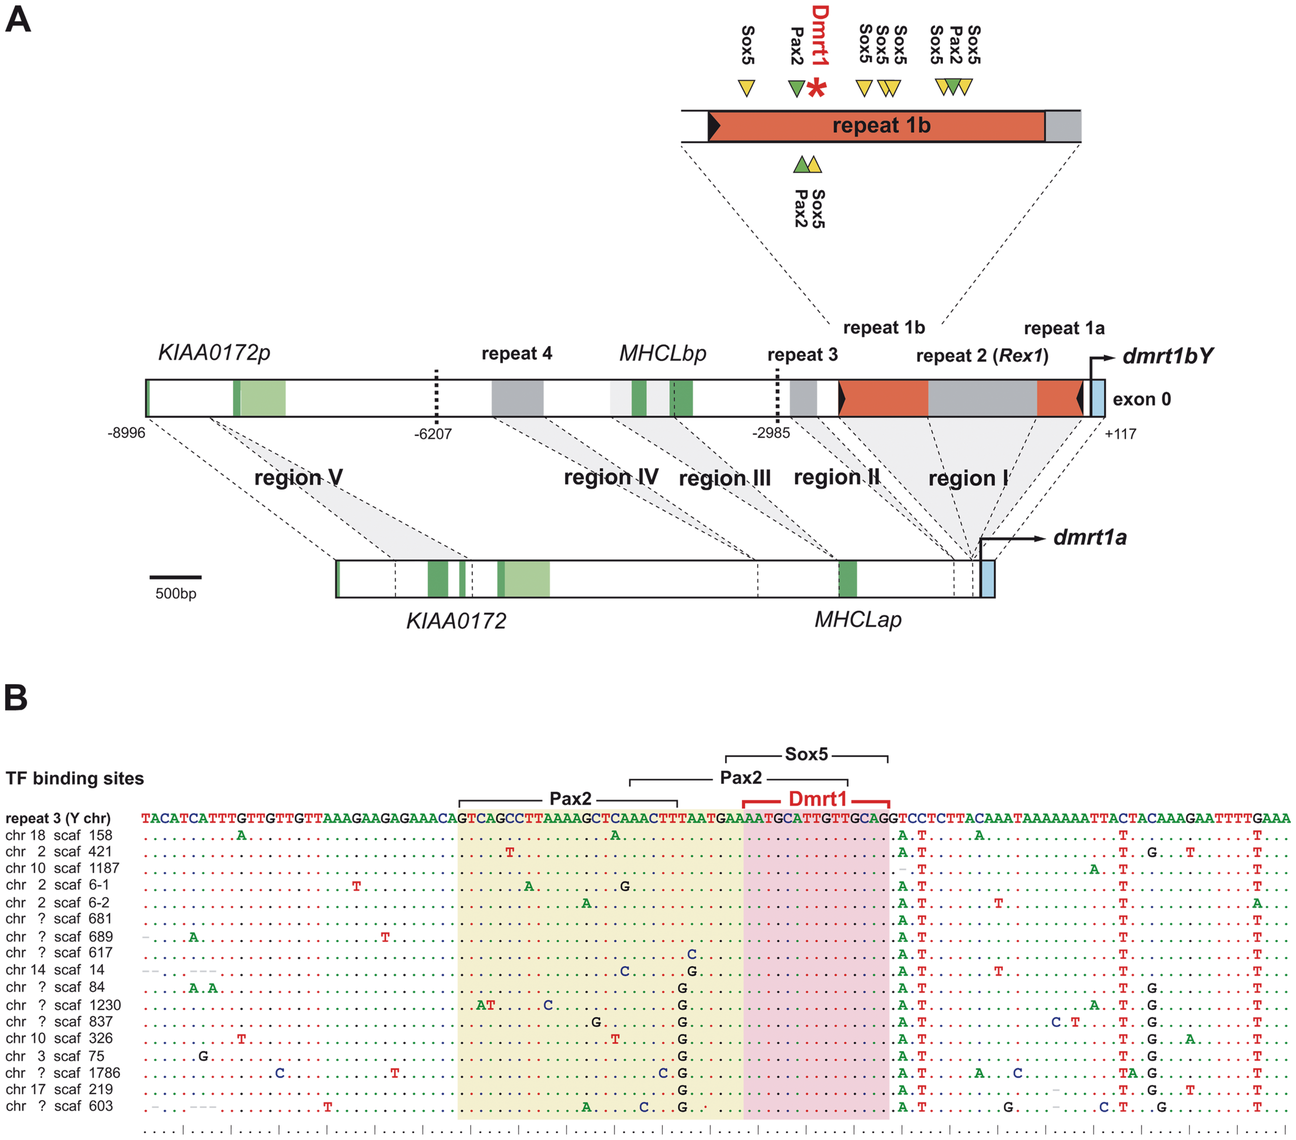 Comparative analysis of the <i>dmrt1bY</i> promoter and its transcription factor binding sites.